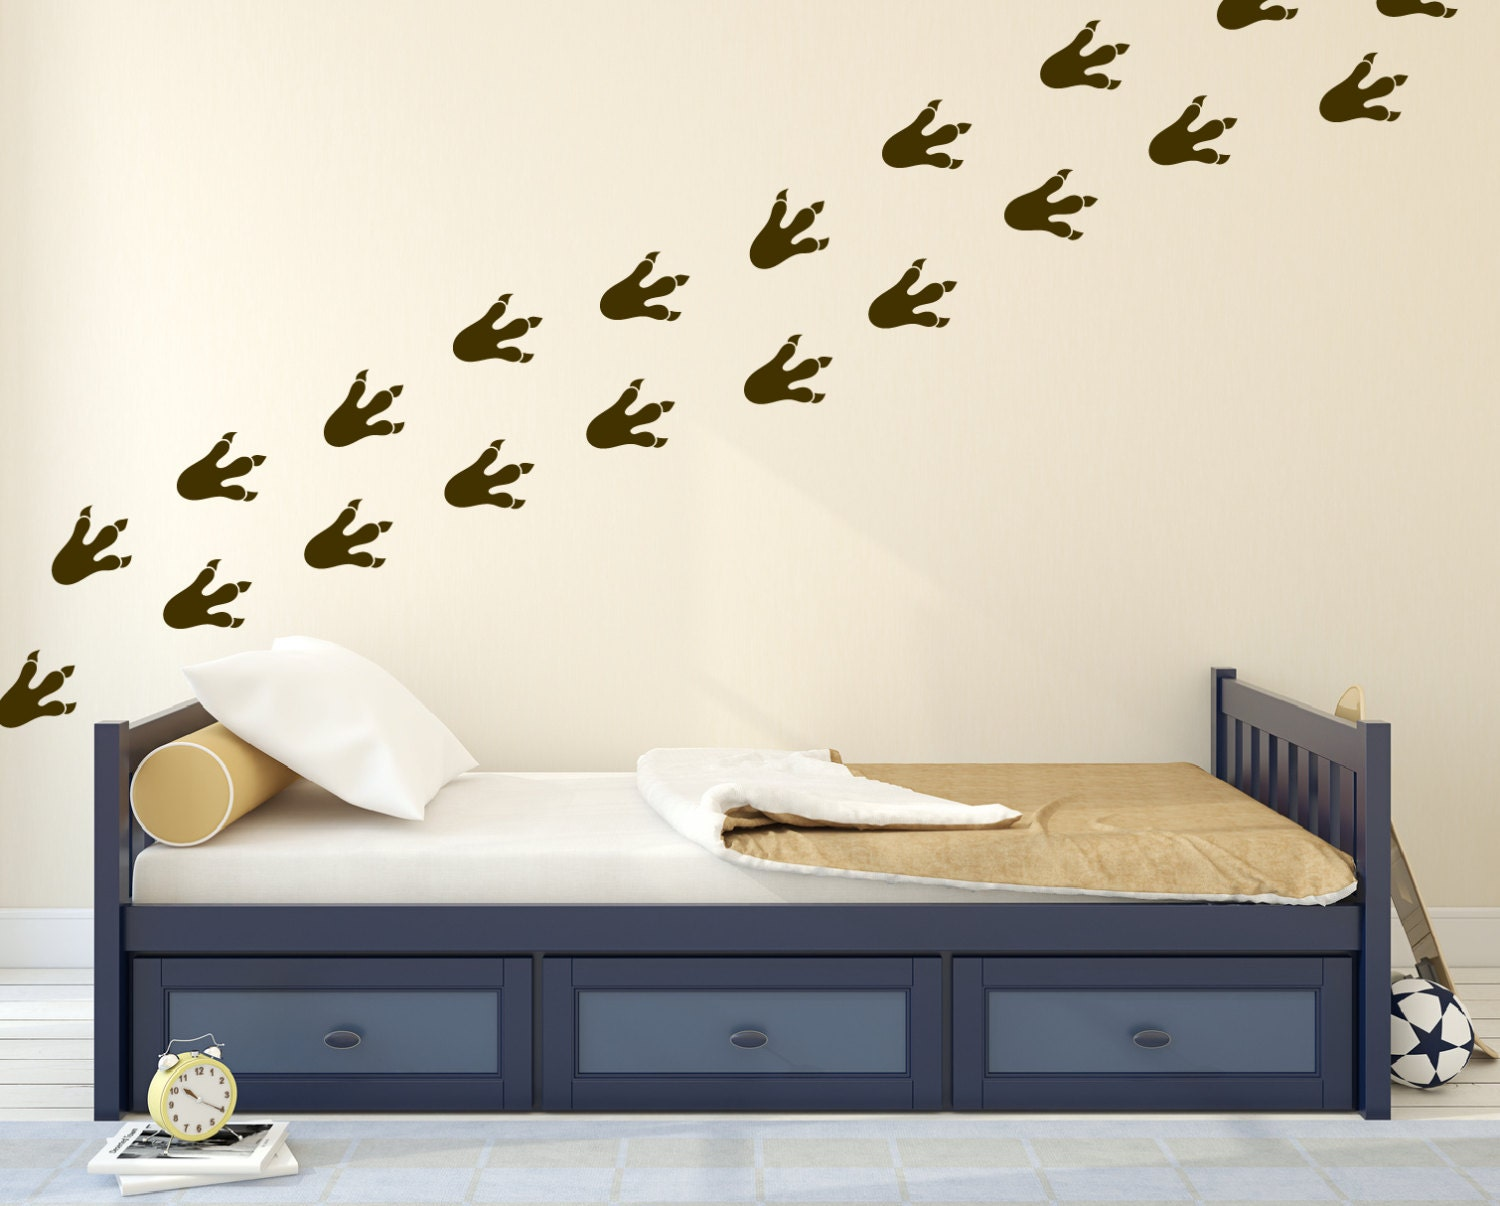 Dinosaur wall decals kids wall stickers for bedroom dinosaur for Dinosaur wall decals for kids rooms